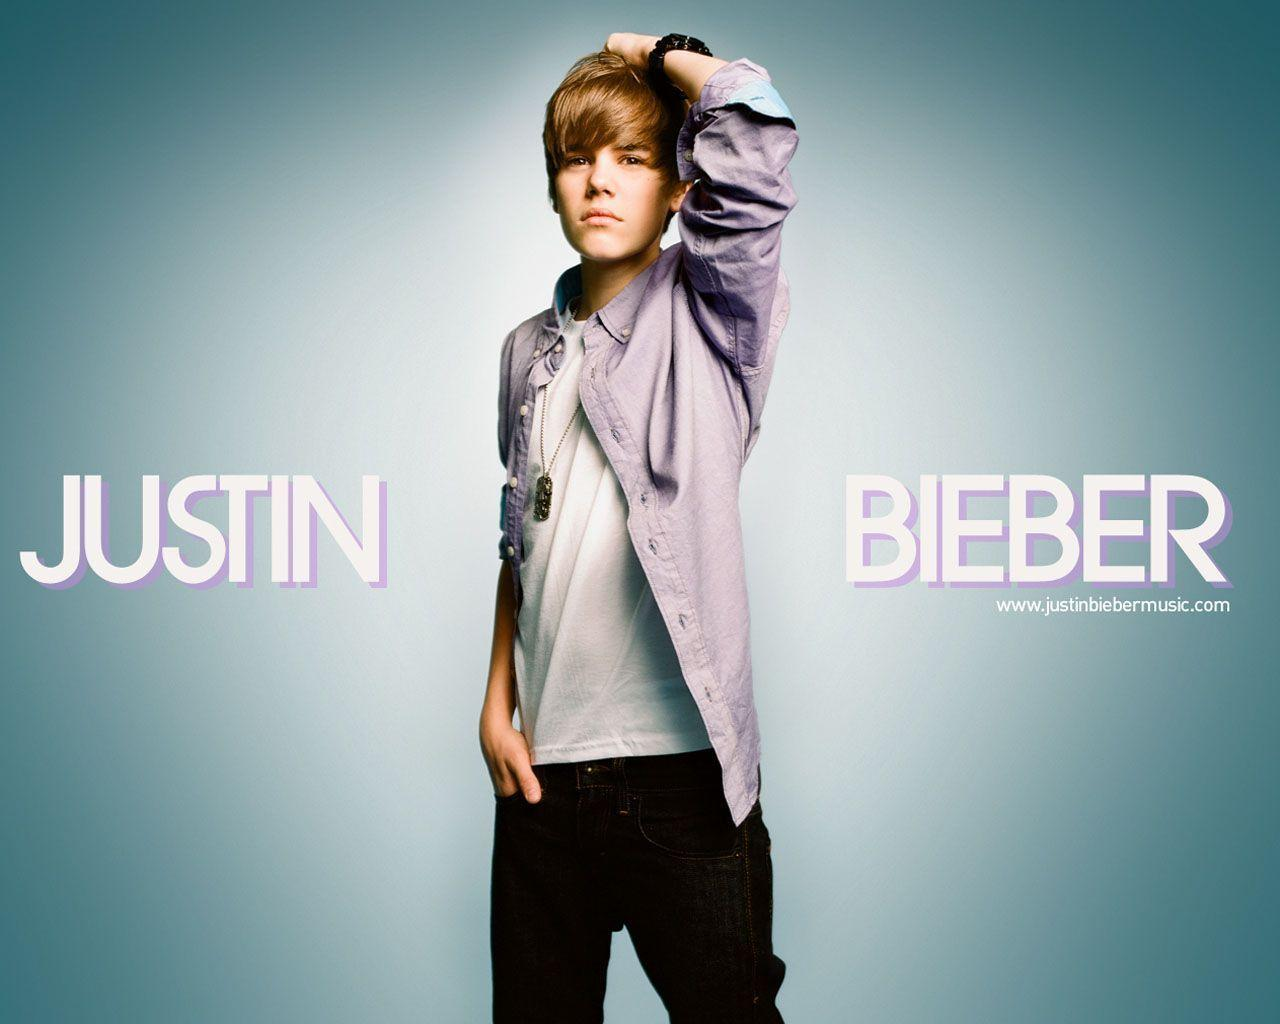 Justin Bieber Wallpaper - Animated Desktop Wallpaper